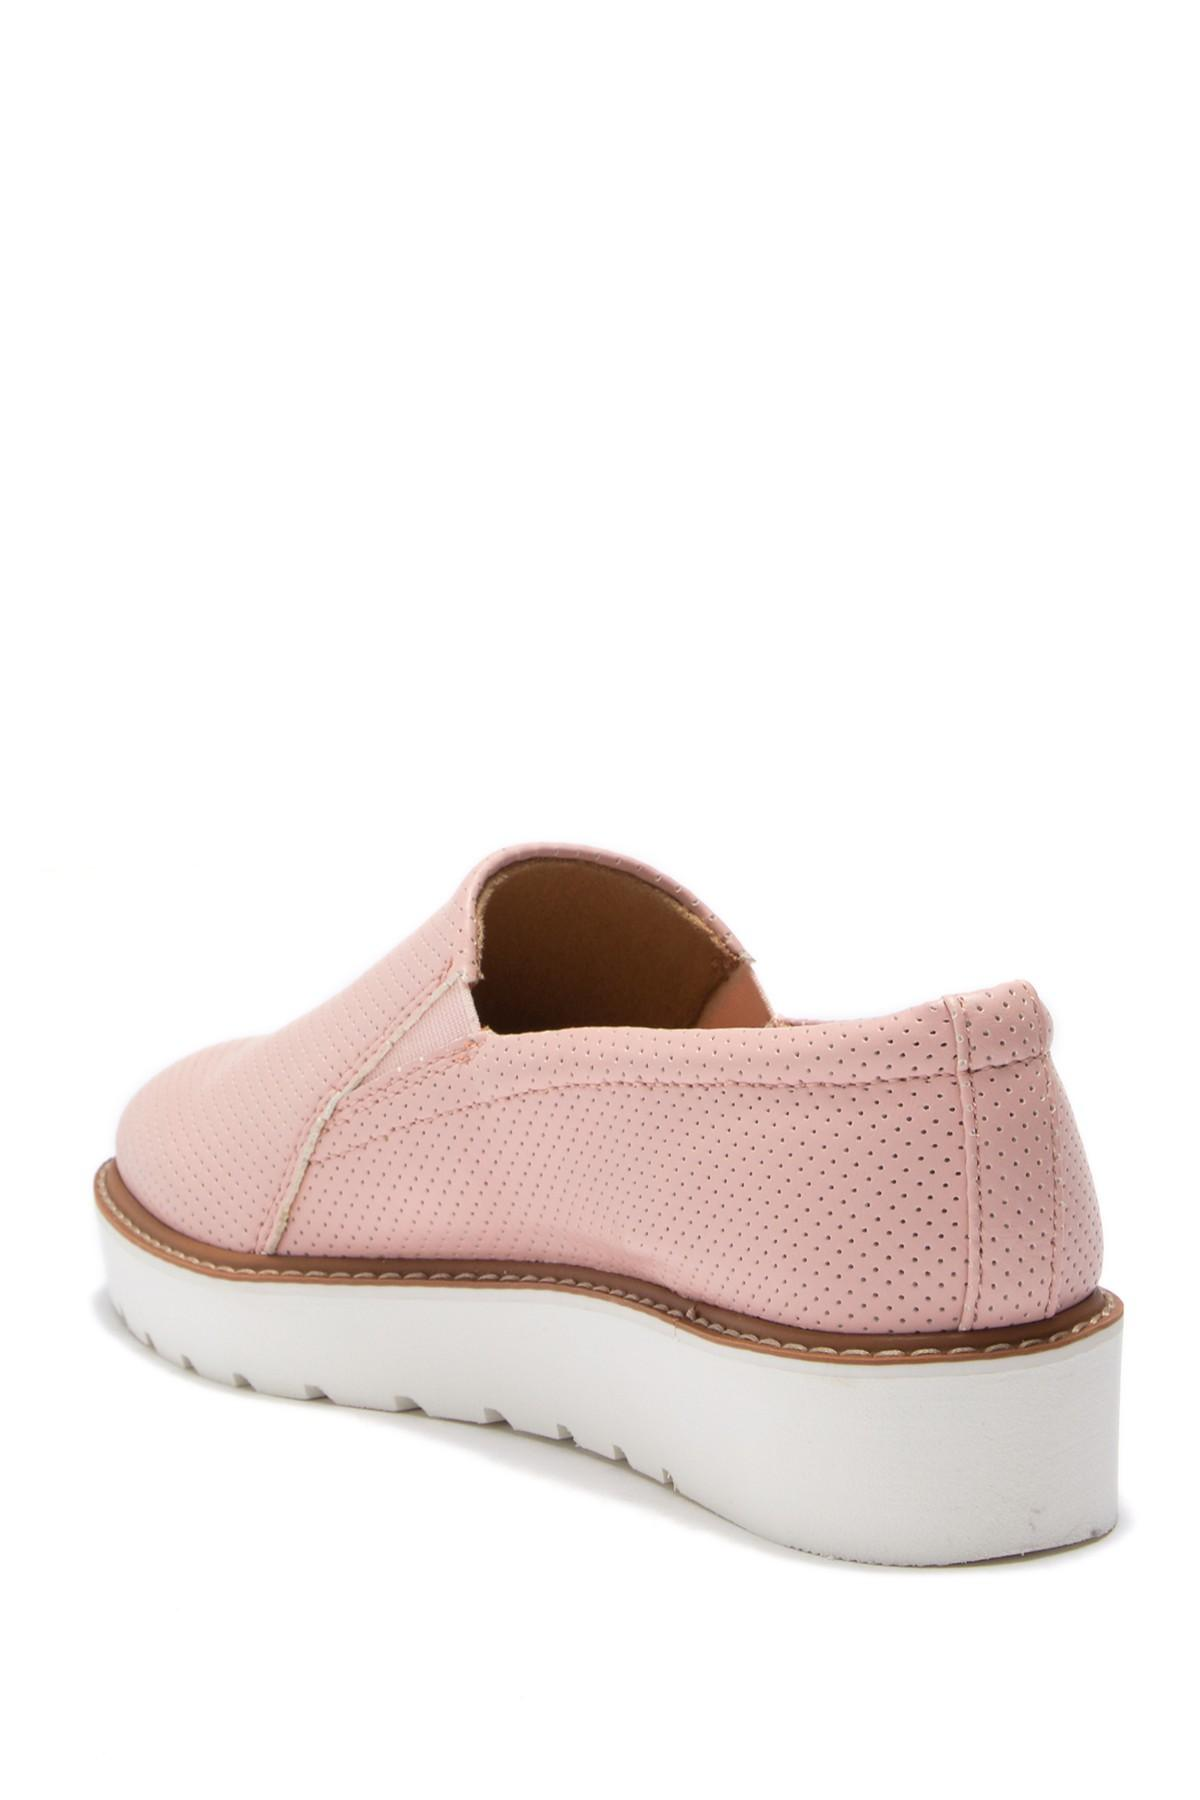 2c36323e9e4 Naturalizer - Pink Effie 2 Platform Loafer - Wide Width Available - Lyst.  View fullscreen